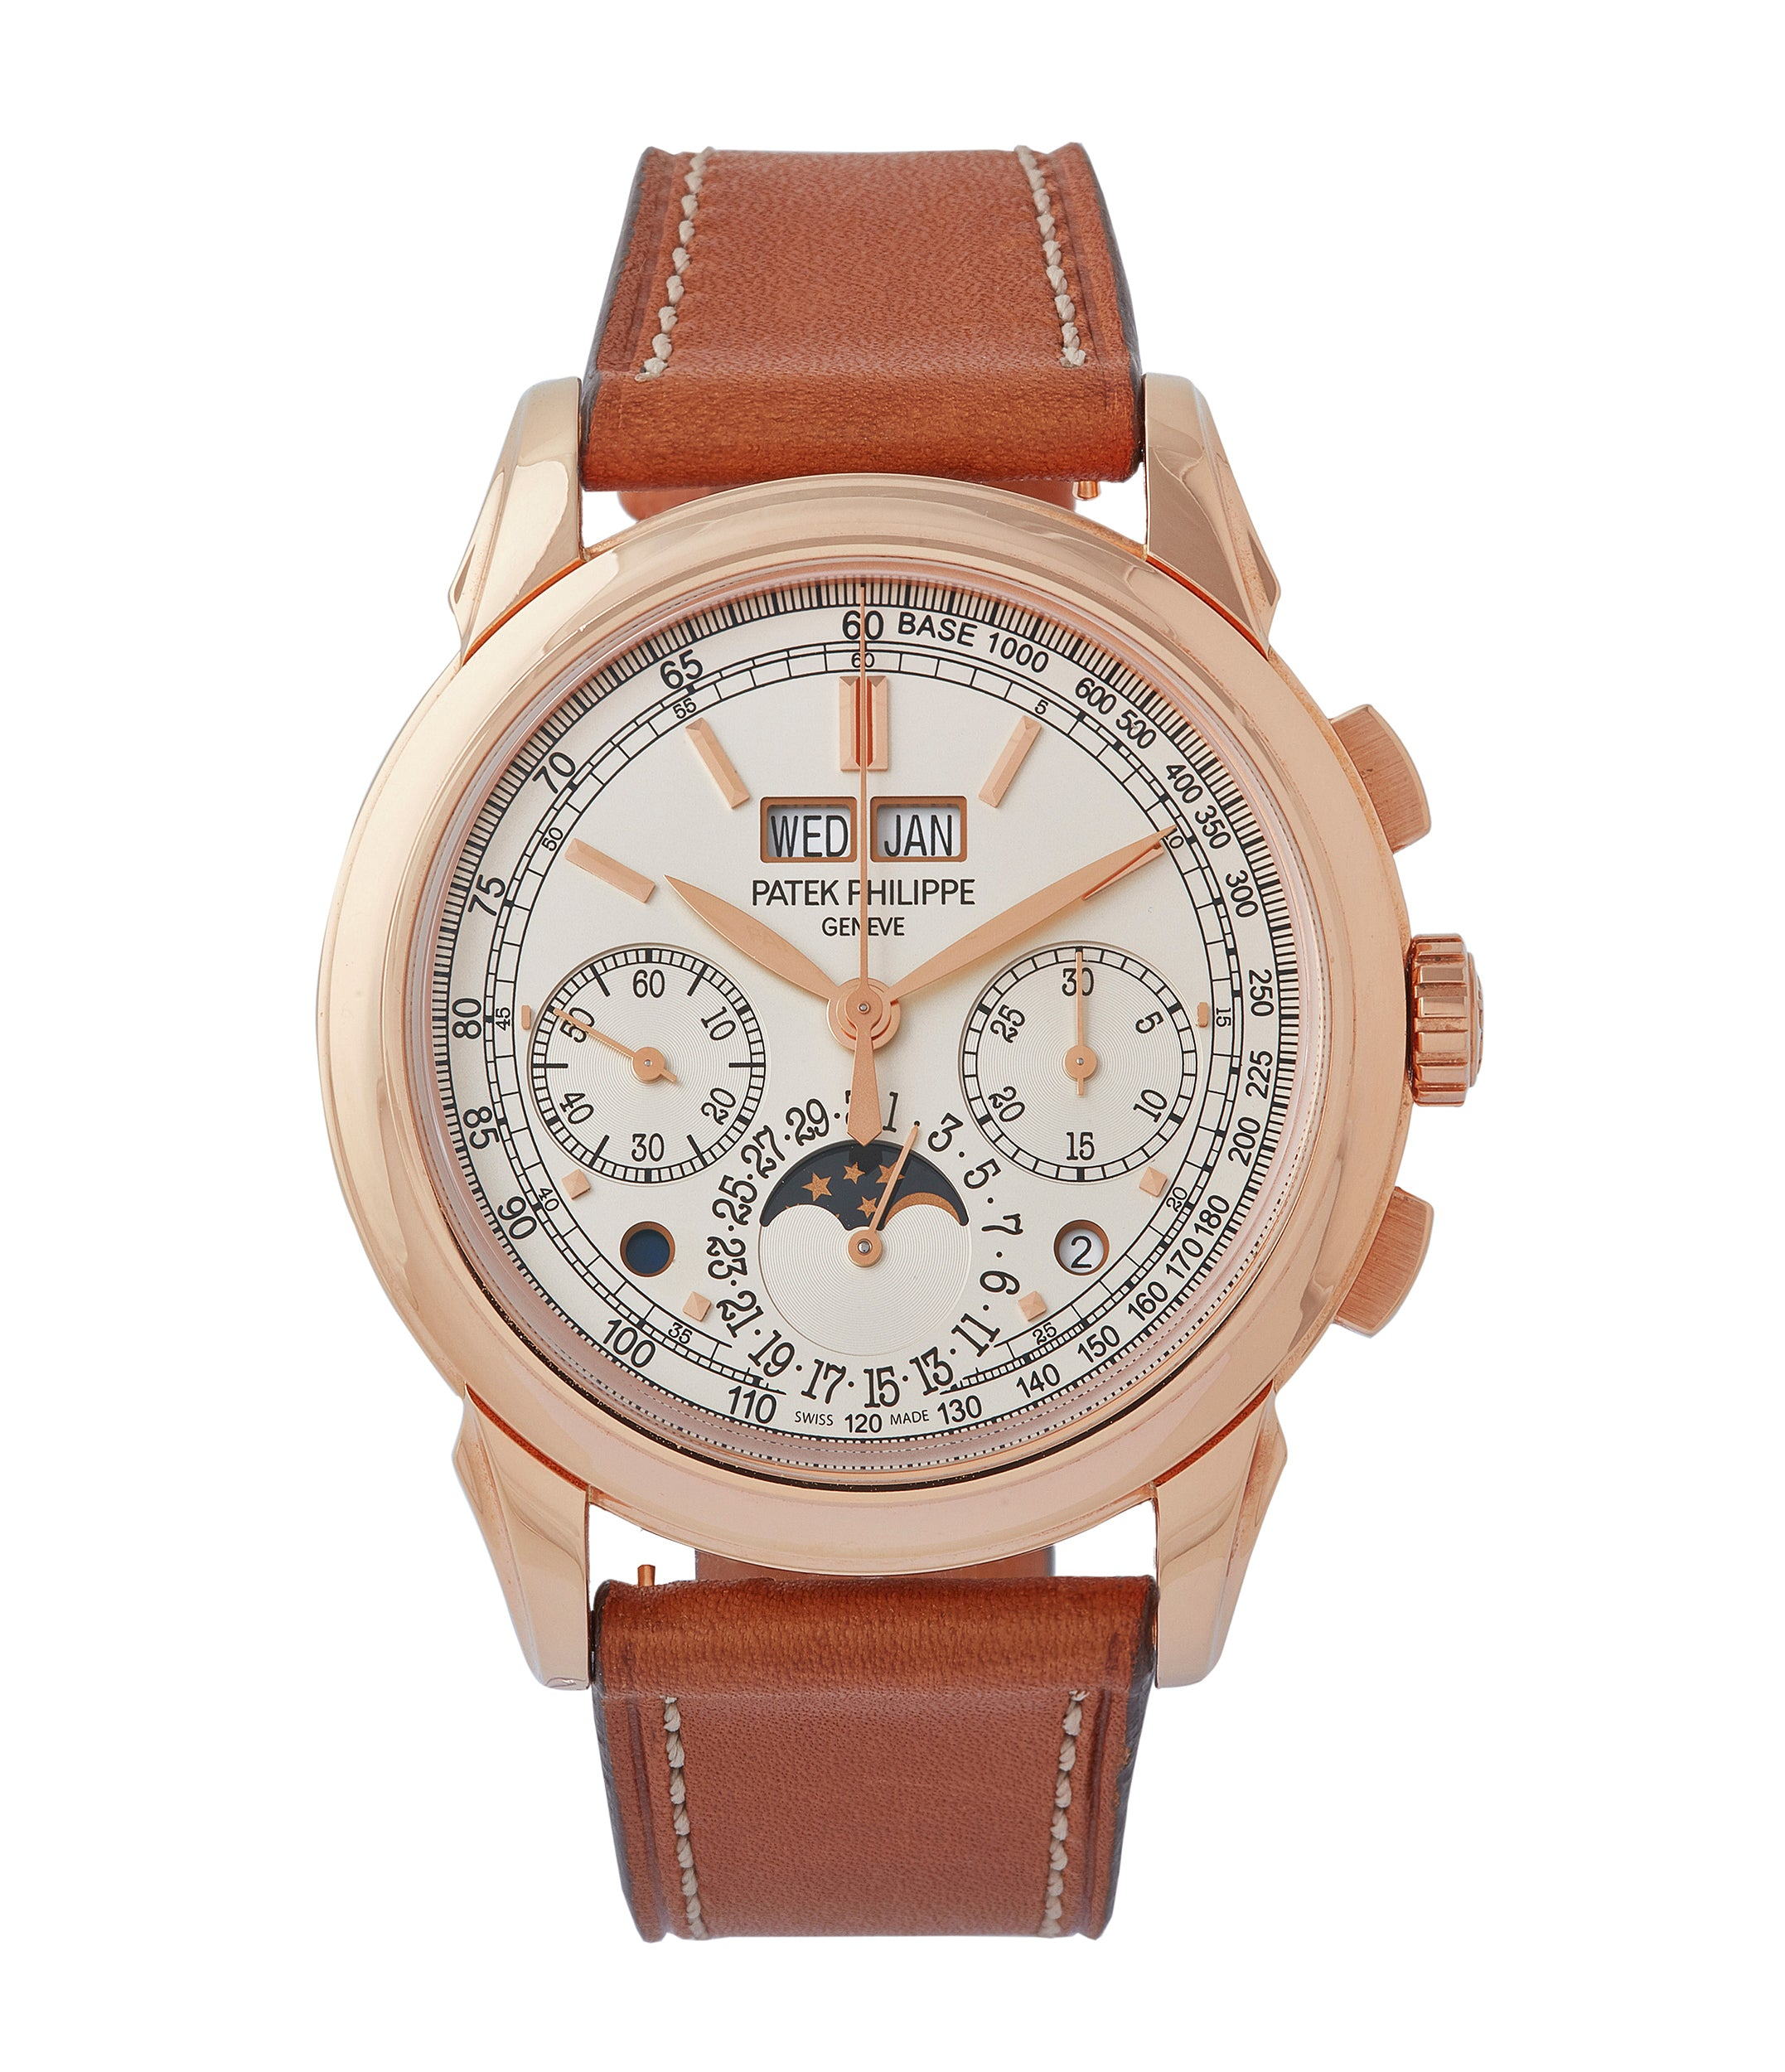 buy Patek Philippe 5270R Grand Complications Perpetual Calendar Chronograph rose gold dress watch for sale online at A Collected Man London UK specialist of rare watches